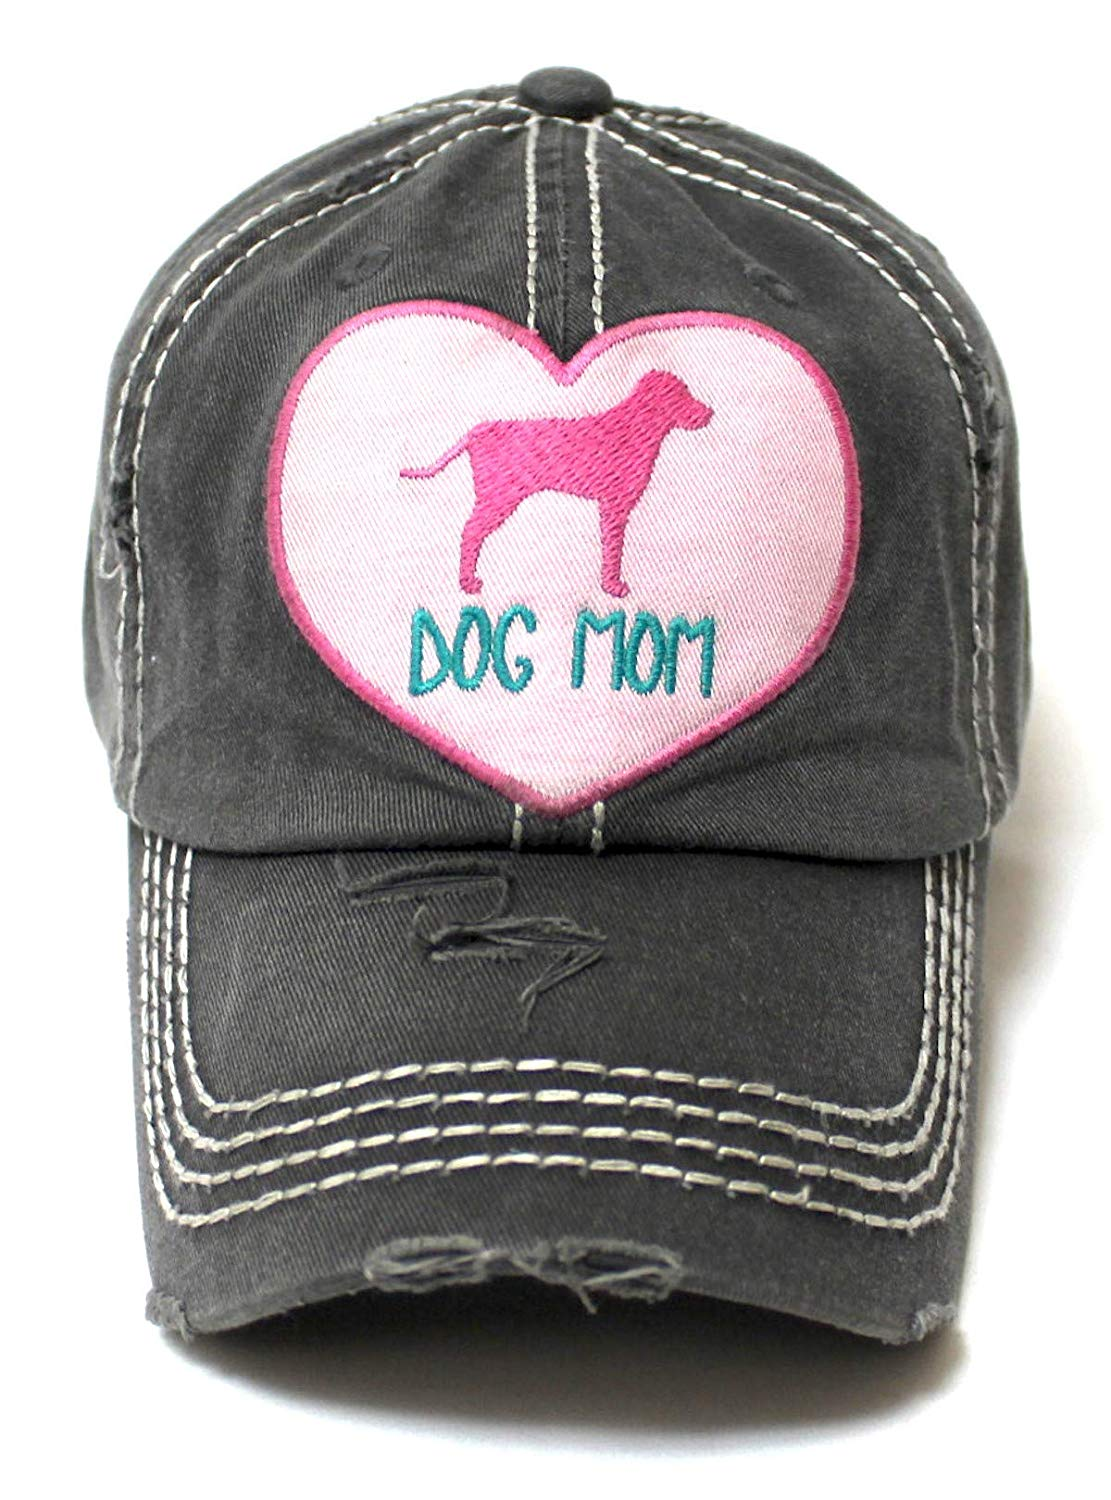 16b2be549e0aae Women's Love Pink Cap Dog MOM Heart Patch Embroidery, Blk - Caps 'N Vintage